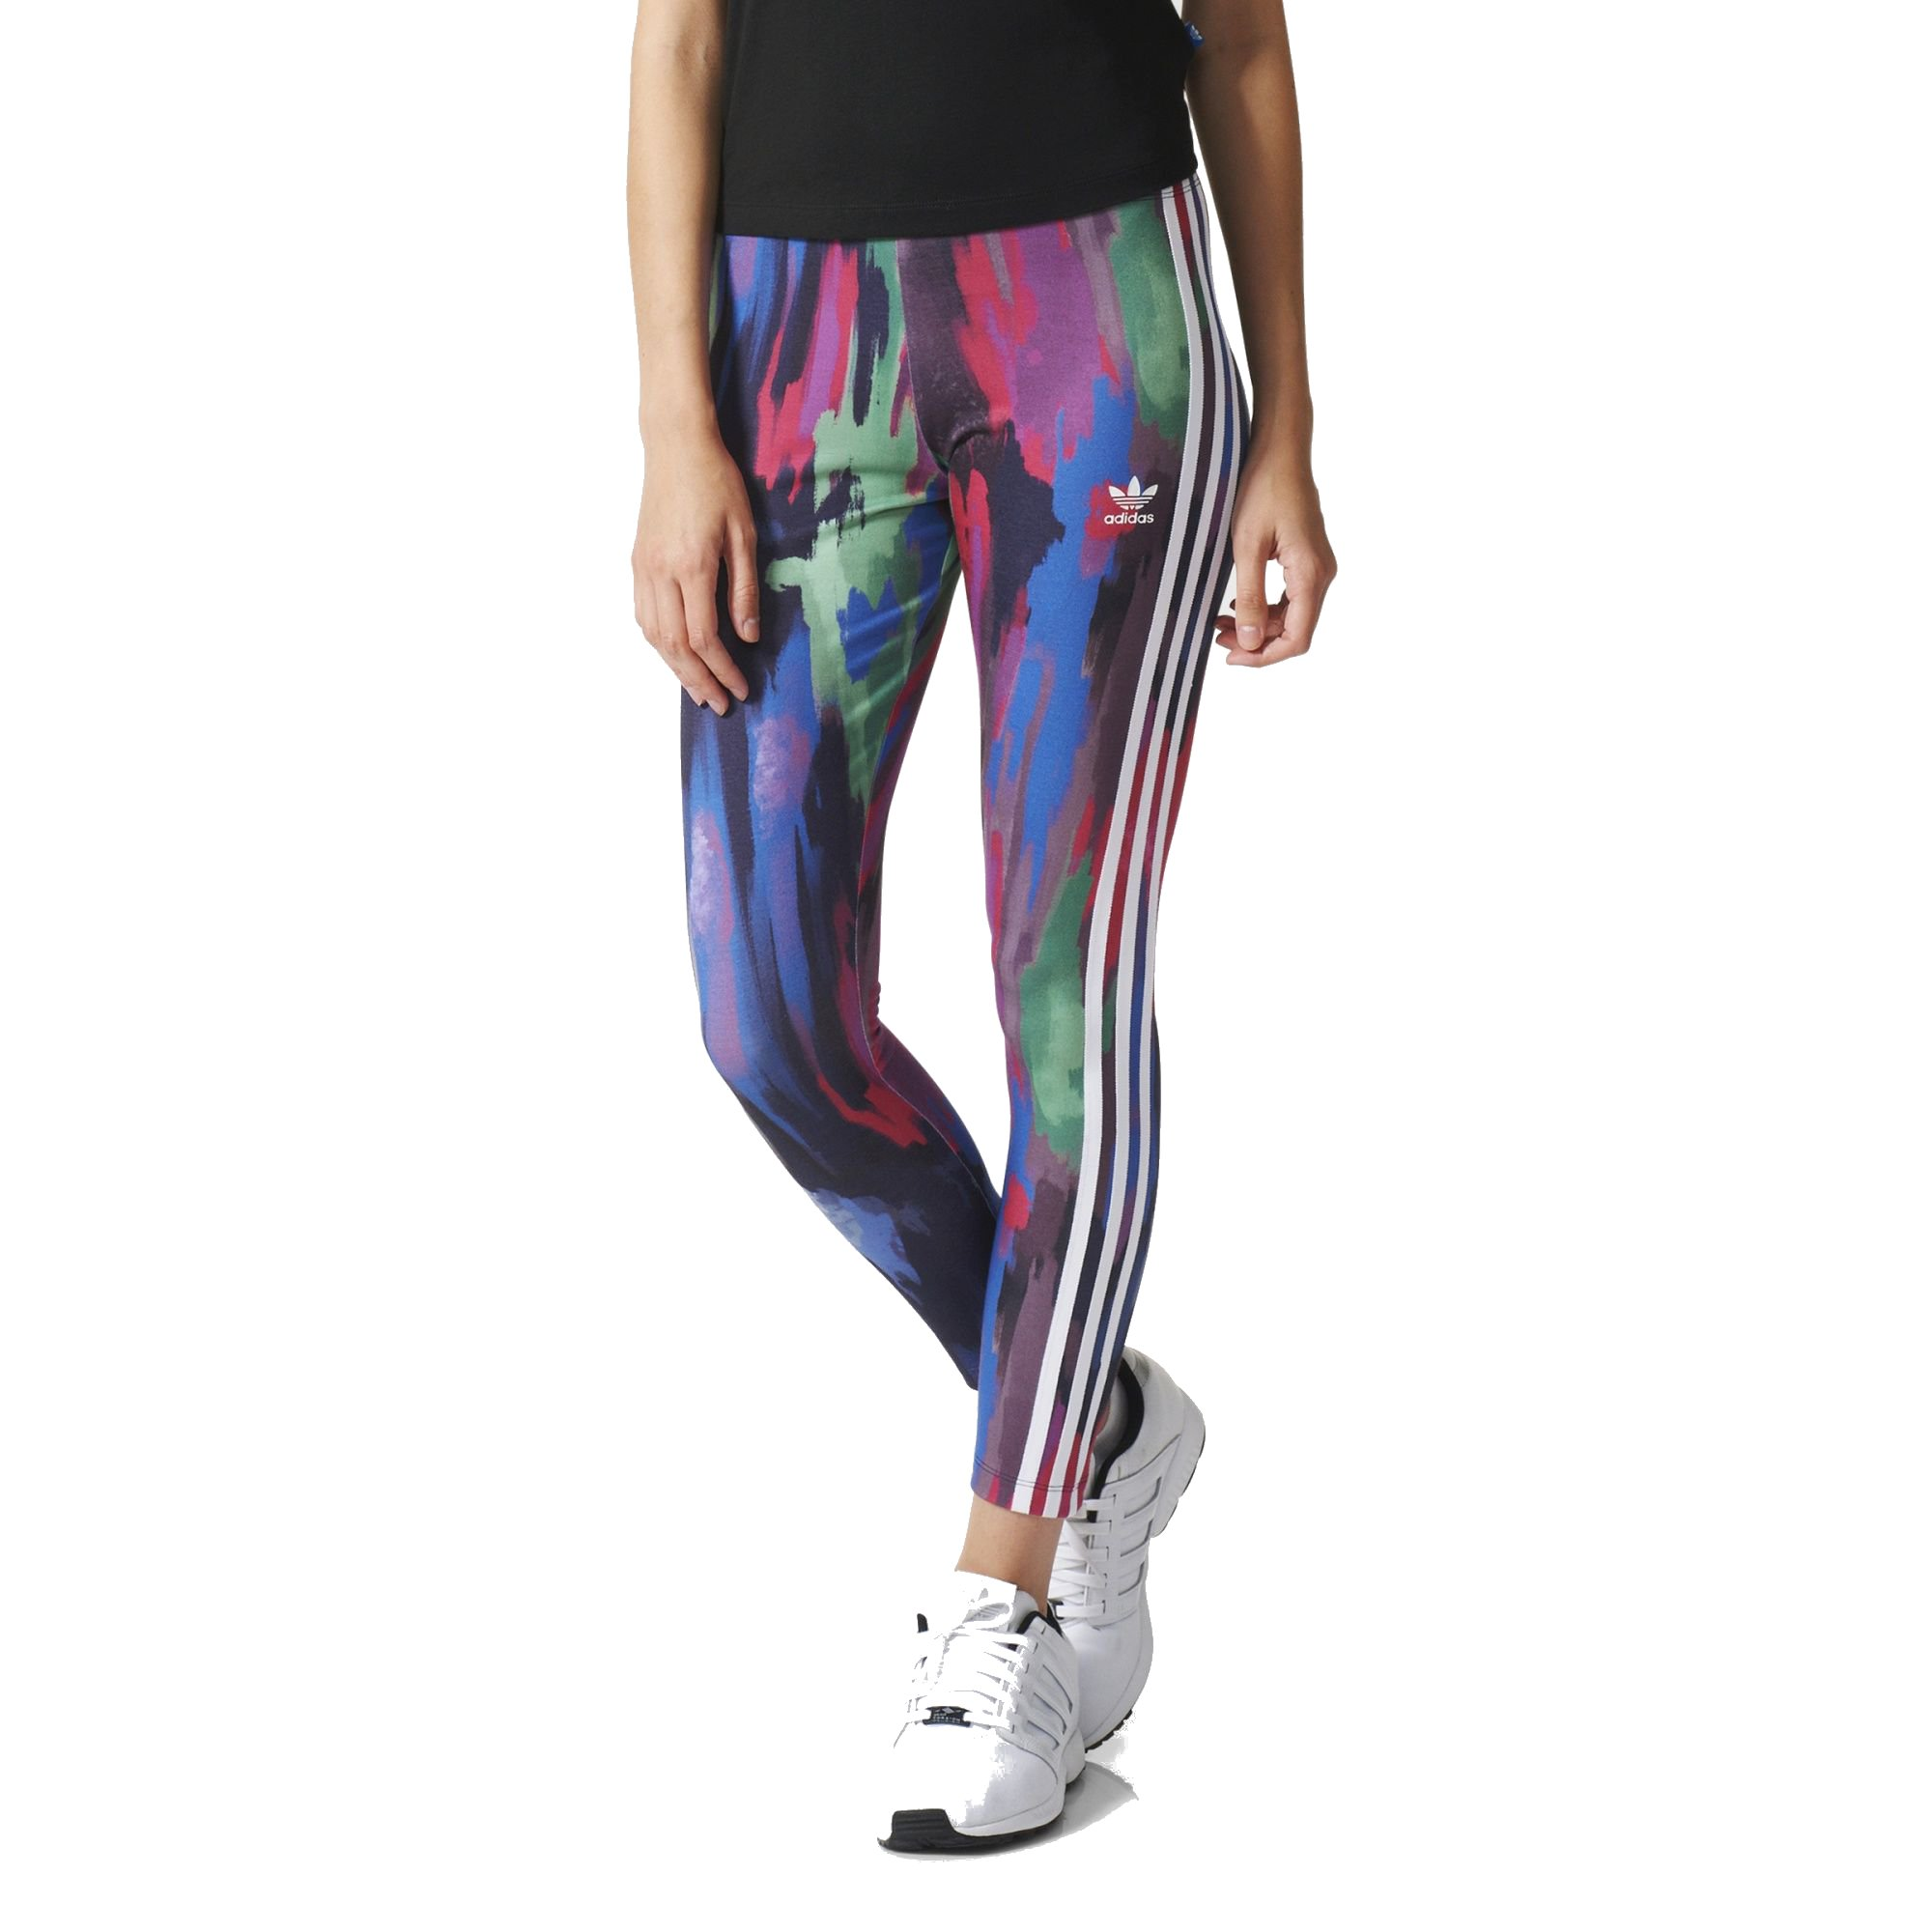 355db291d Adidas Originals Mujer Leggings Camouflage Tree By Pharrell Williams  (multicolor)